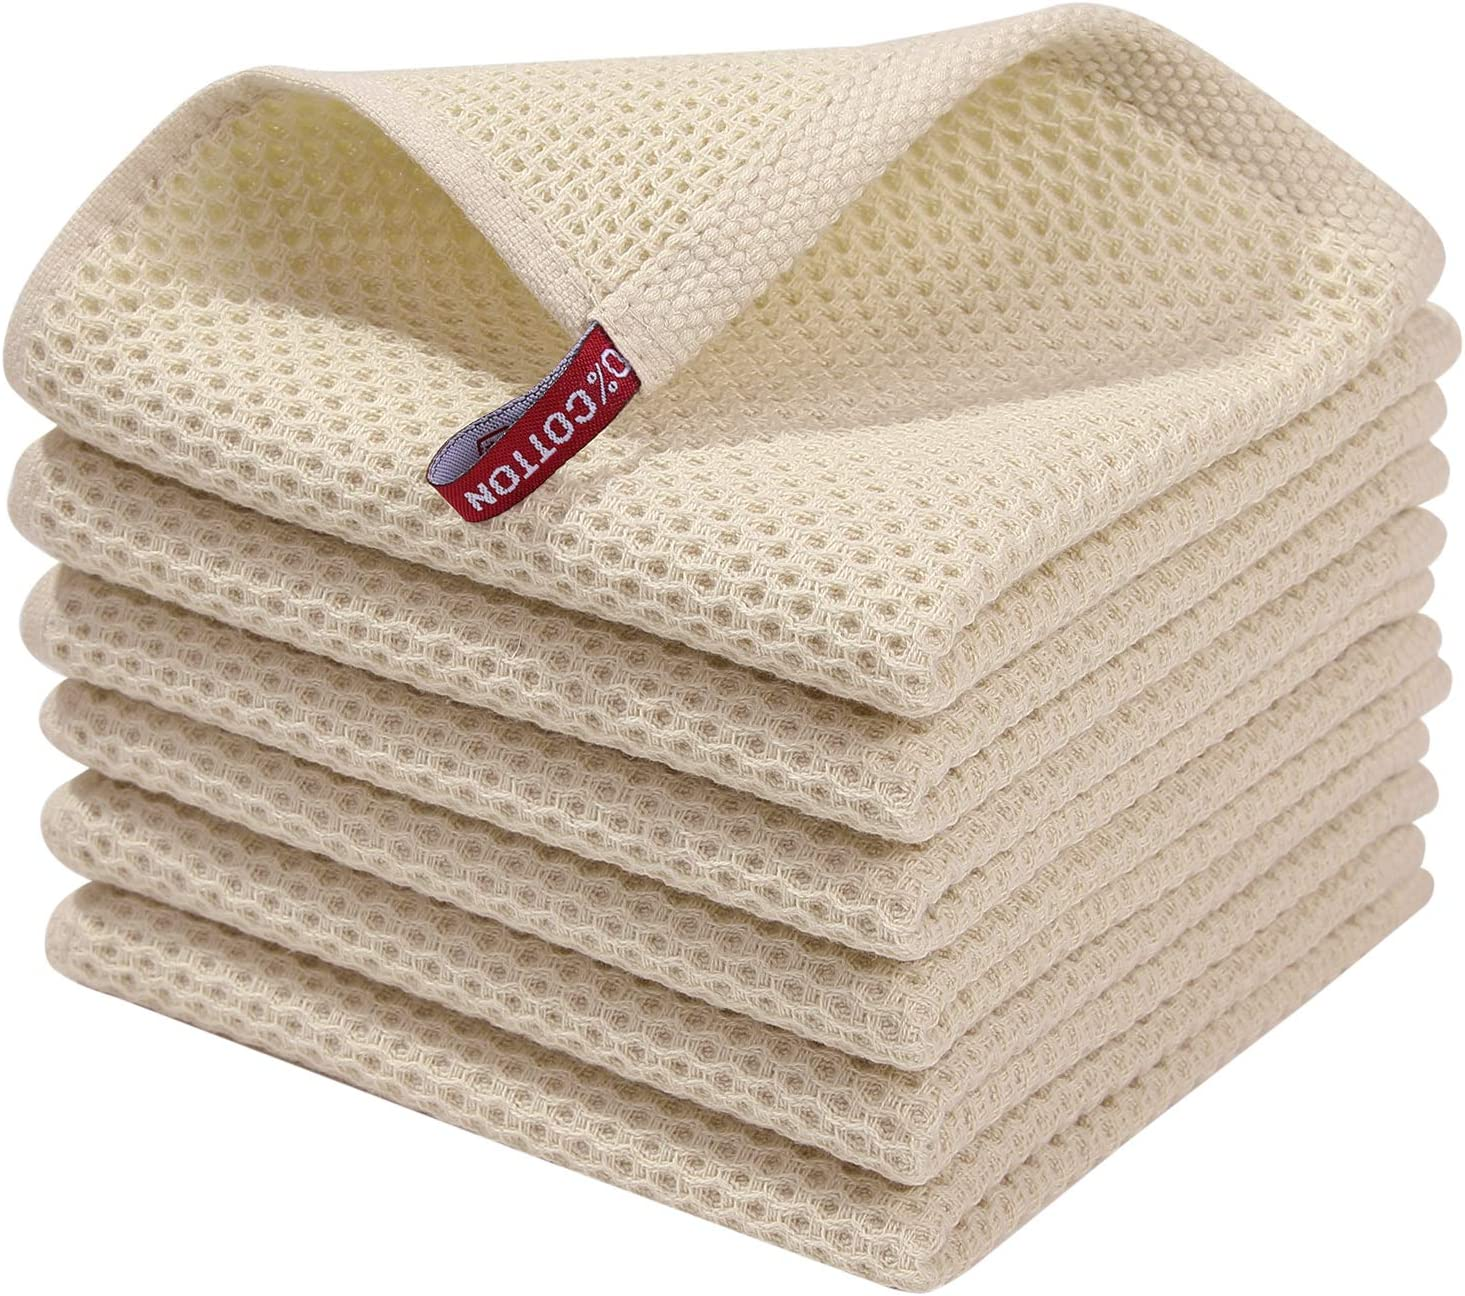 Homaxy 100 Cotton Waffle Weave Kitchen Dish Cloths Ultra Soft Absorbent Quick Drying Dish Towels 12x12 Inches 6 Pack Beige Home Kitchen